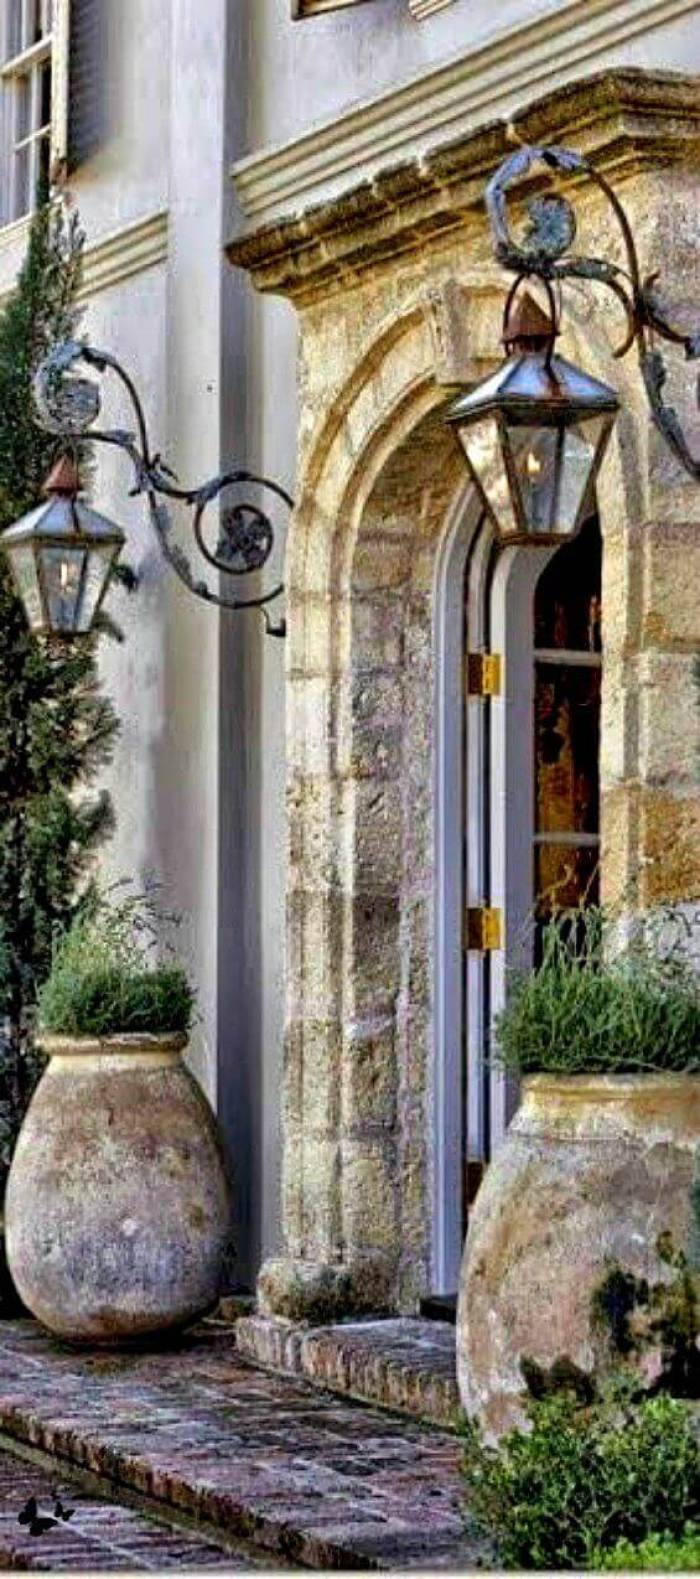 French Country Decor Classic Lanterns and Planters - Harptimes.com